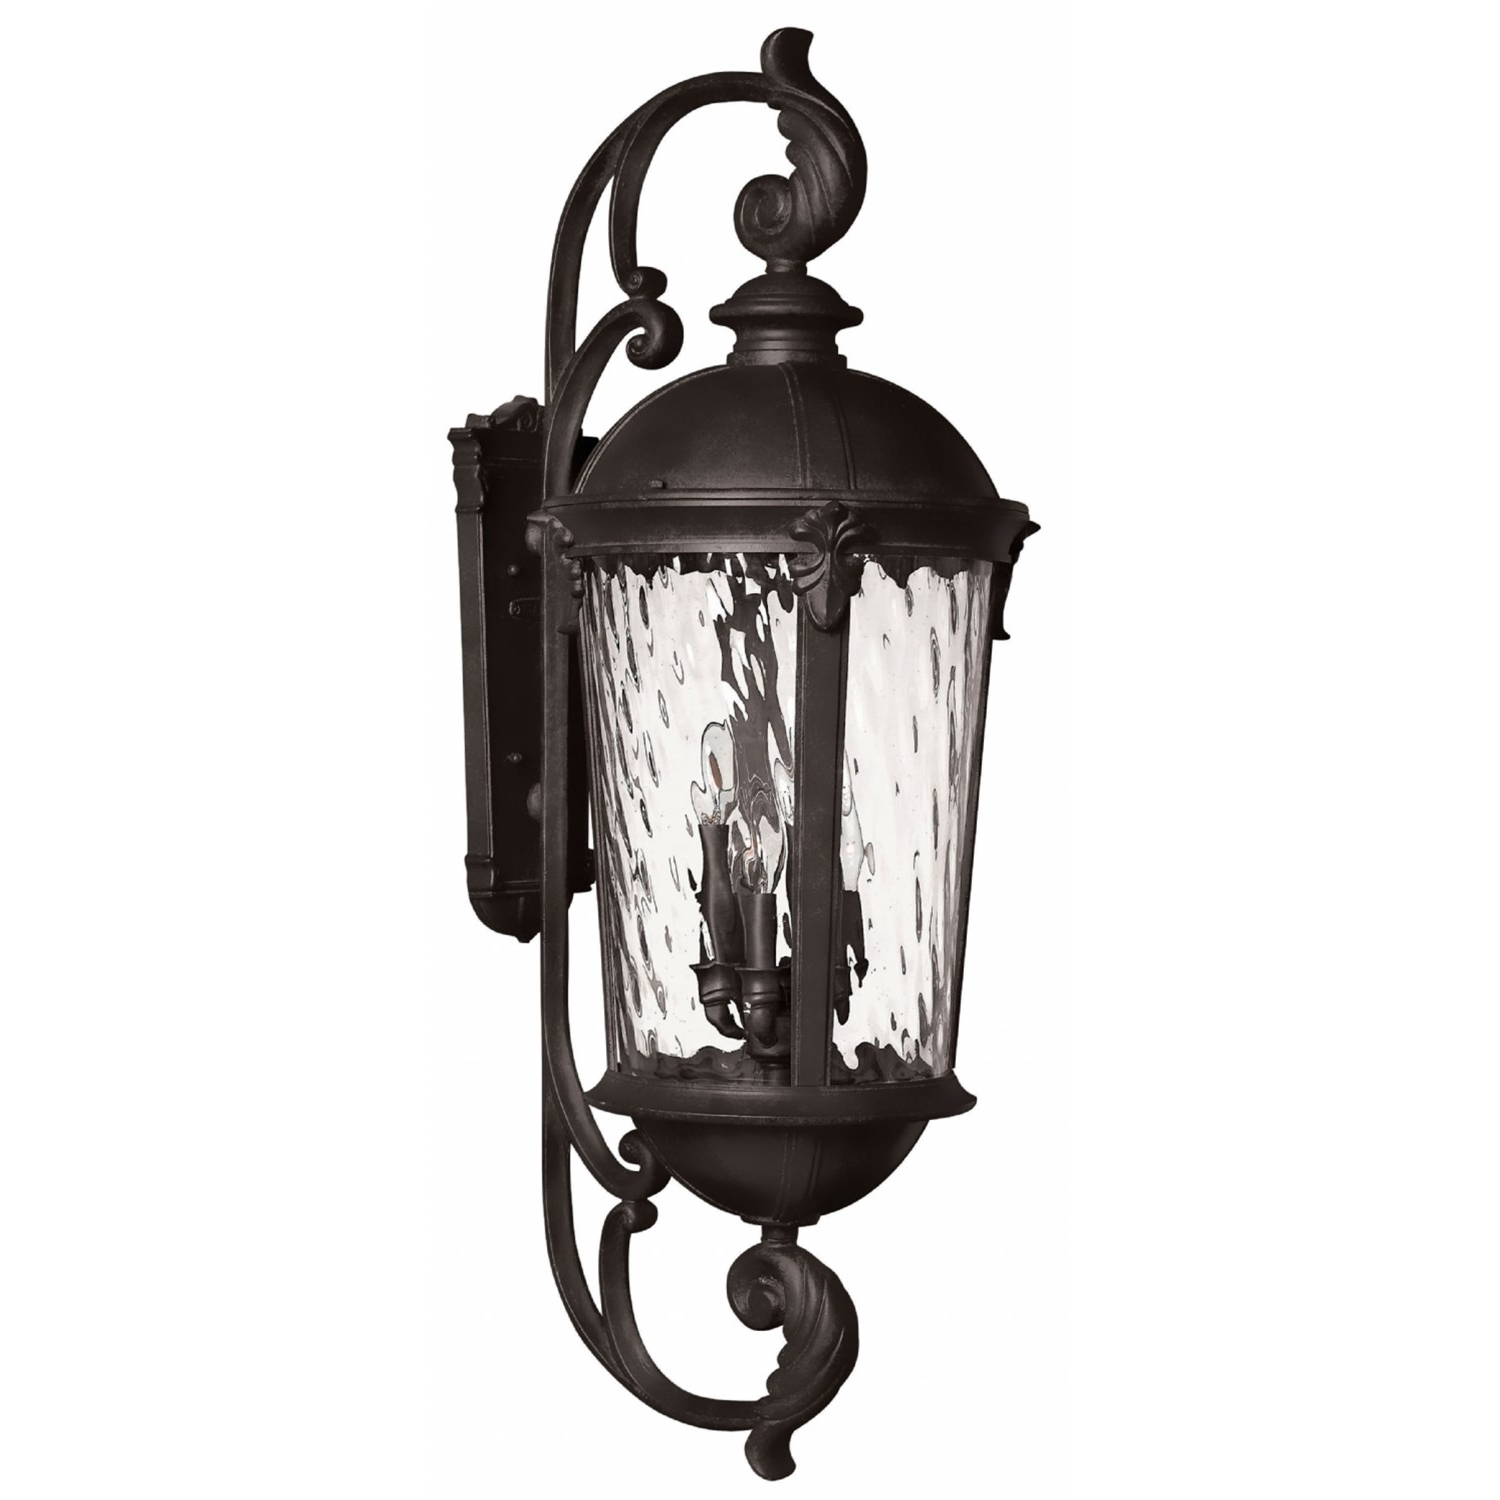 Hinkley 1929bk Led Windsor 2 Light Extra Large Outdoor Wall Mount Inside Newest Extra Large Wall Mount Porch Hinkley Lighting (View 4 of 20)